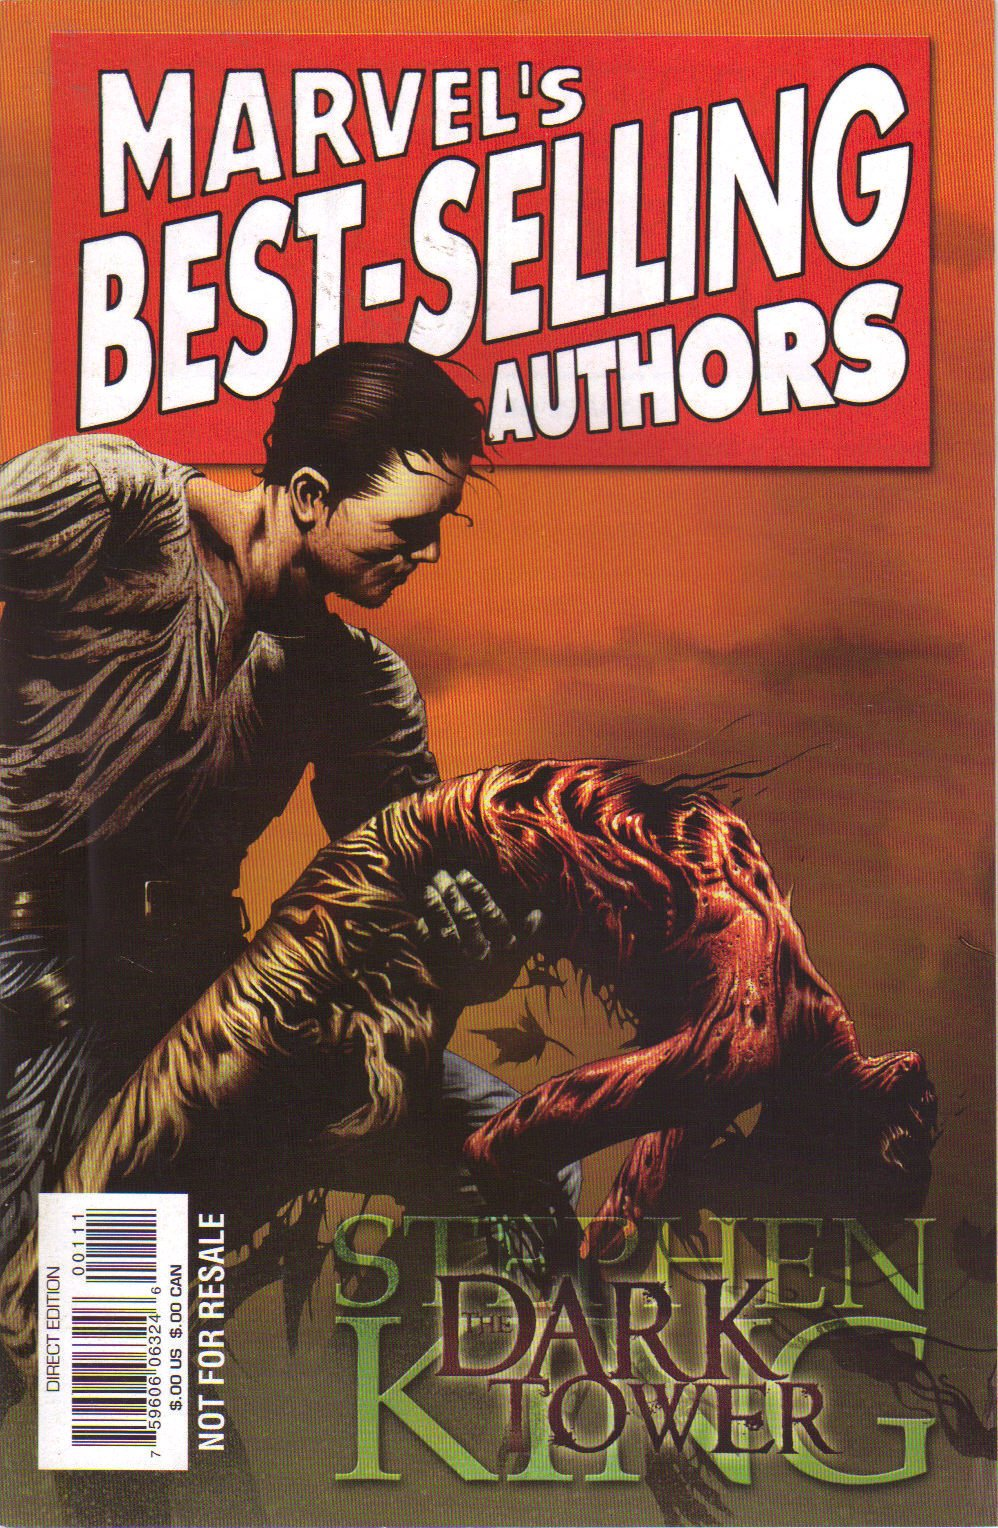 marvel's best selling author's (stephen king the dark tower)